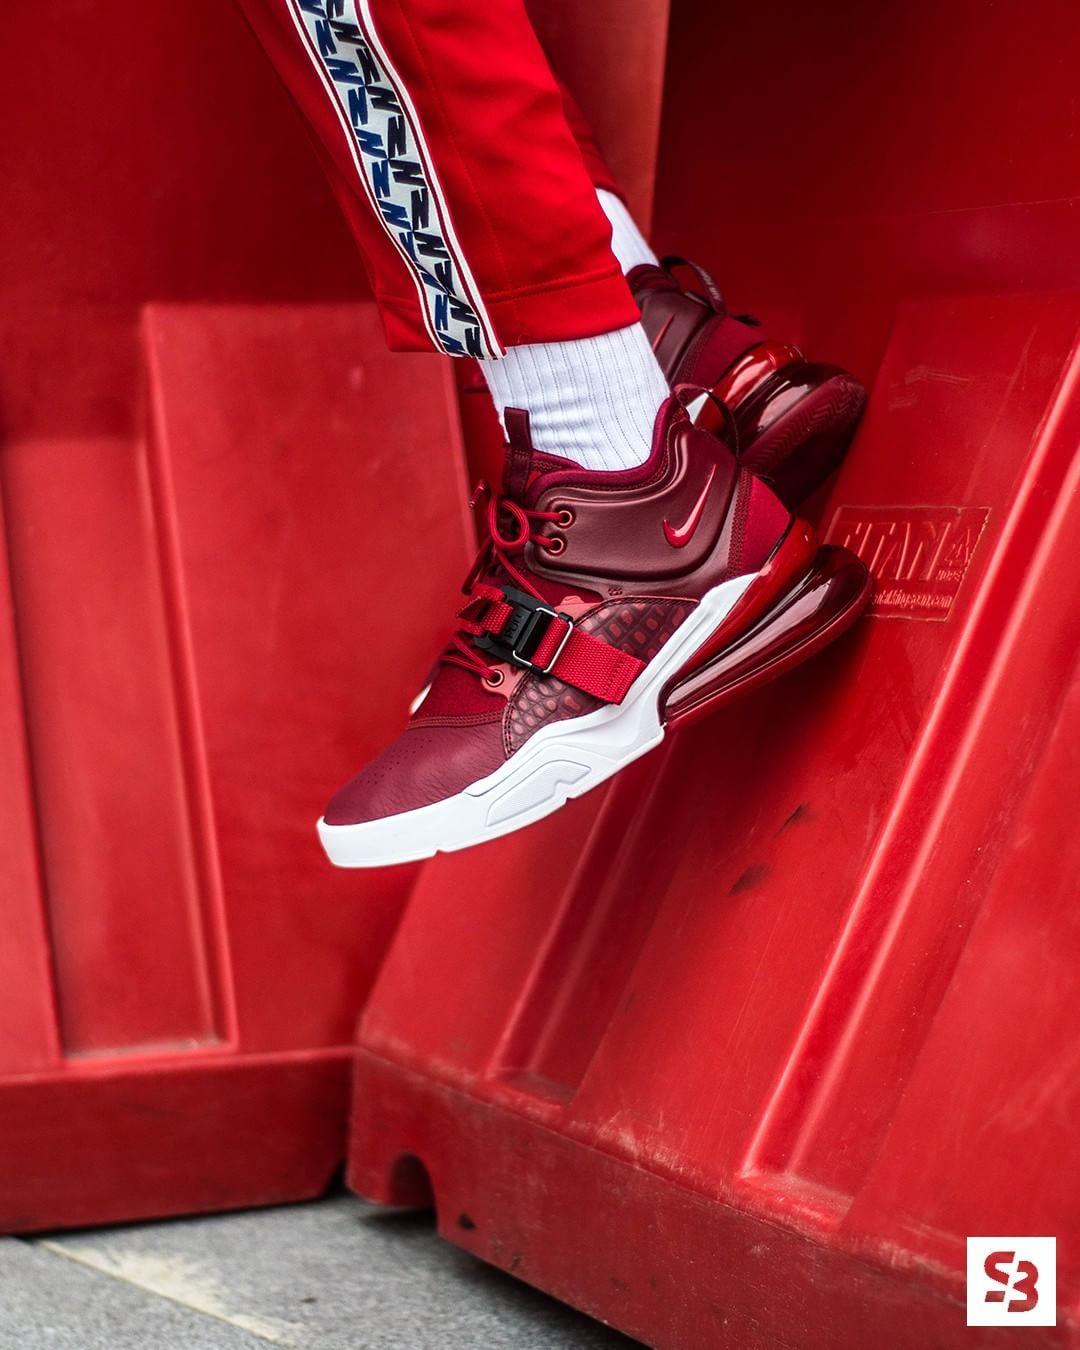 """the best attitude 943ce 5a2d8 ow online available Sneakerbaas. 270 degrees of Air, now in an Air Force  fit. The ultimate comfort in a """"Team Red"""" colorway. The sneaker"""